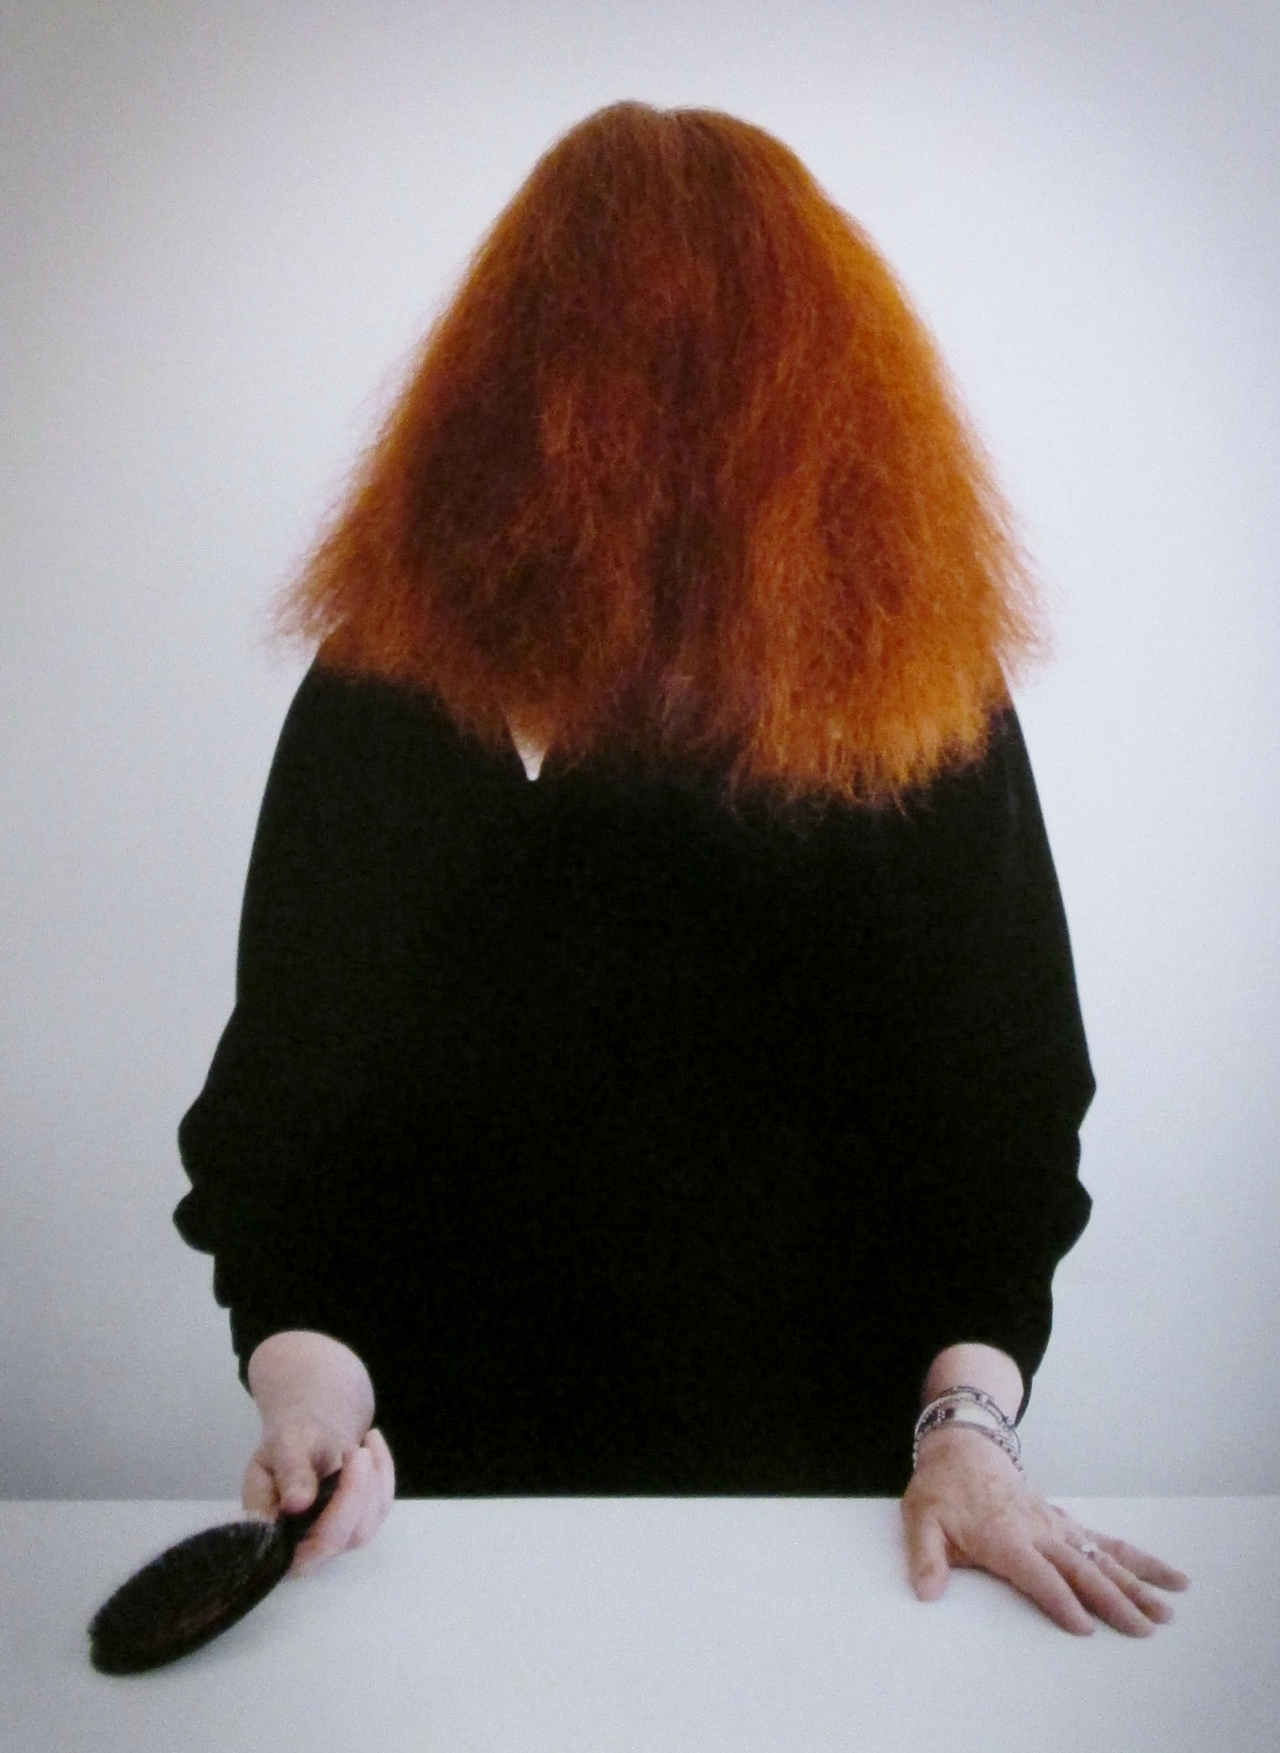 tim-walker-grace-coddington-portrait